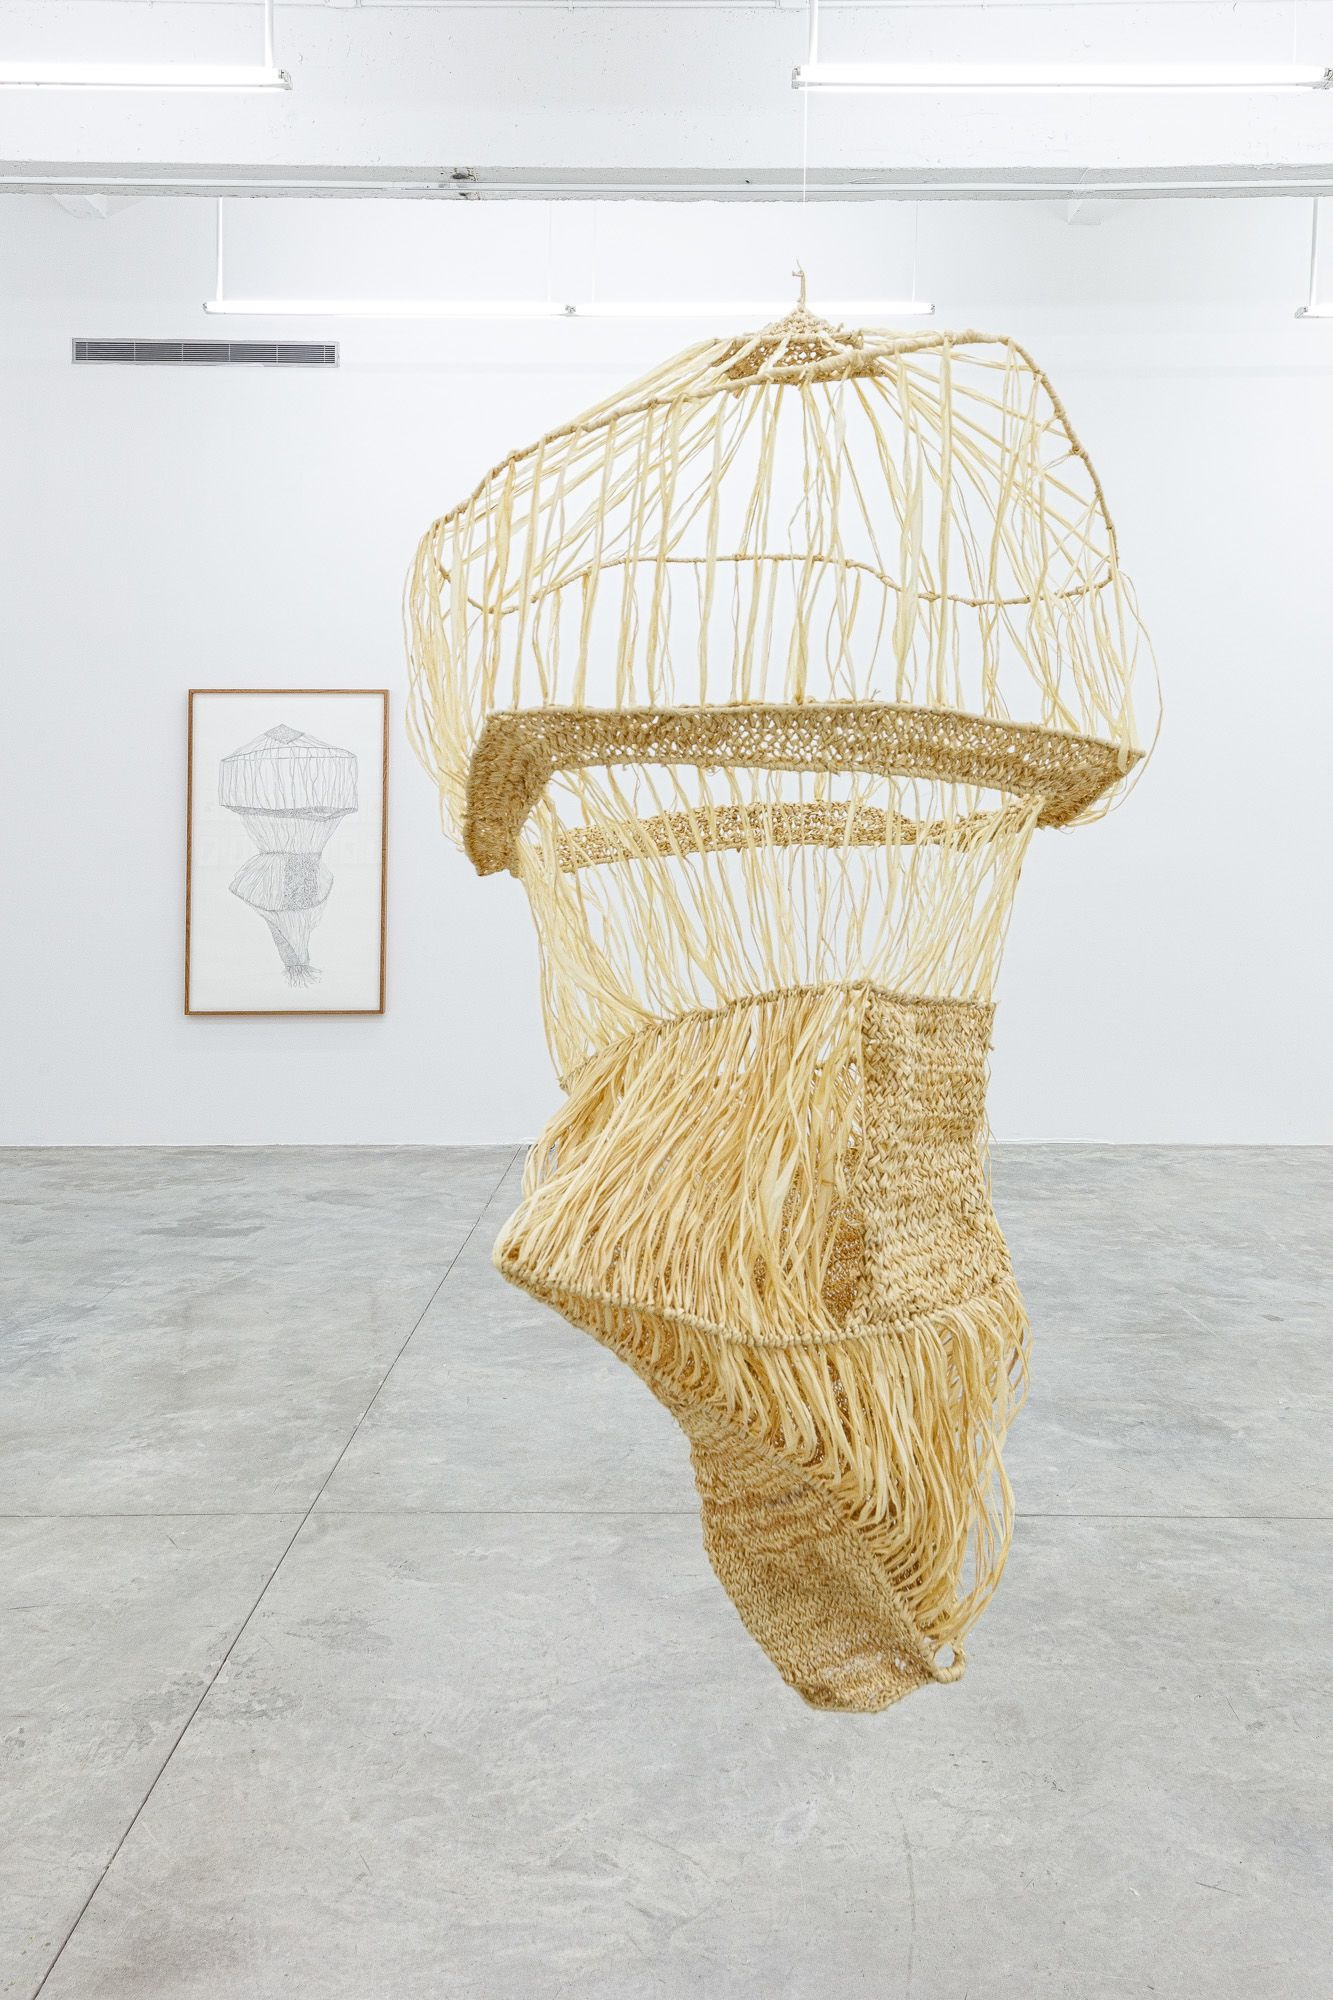 One clump of raffia reconstruction